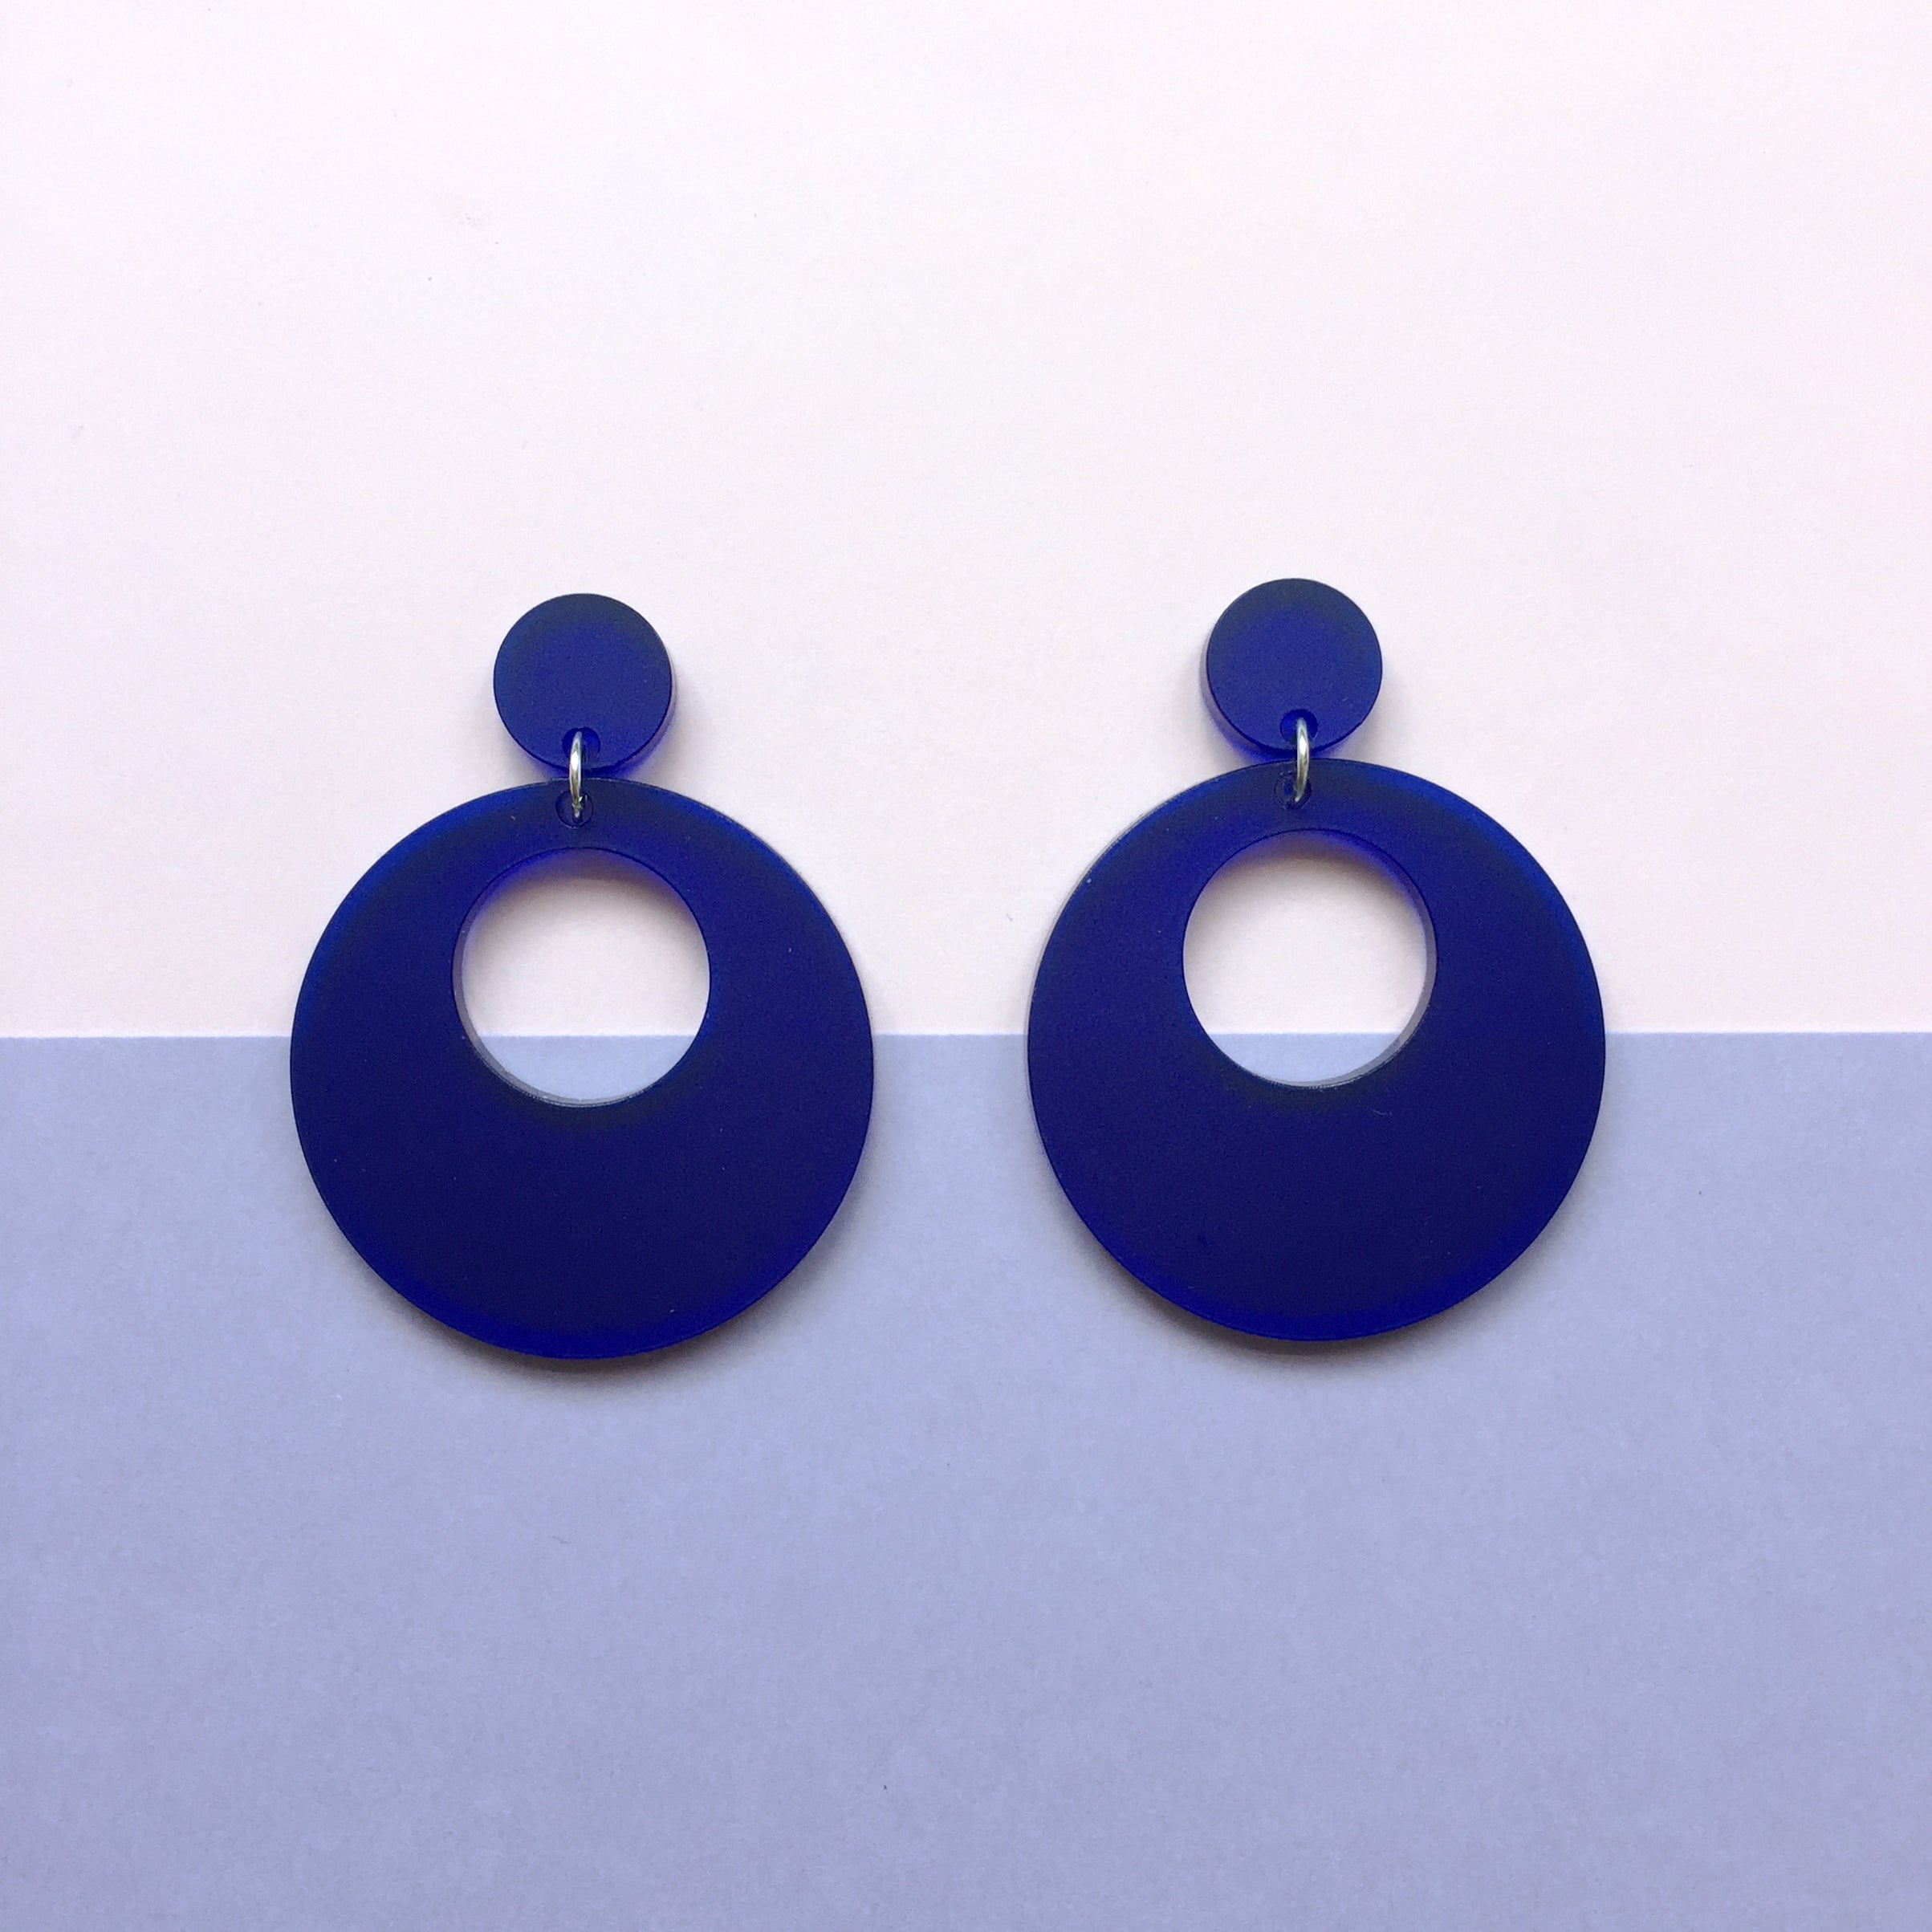 Mod Inspired Stud Hoop Earrings - Frosted Royal Blue